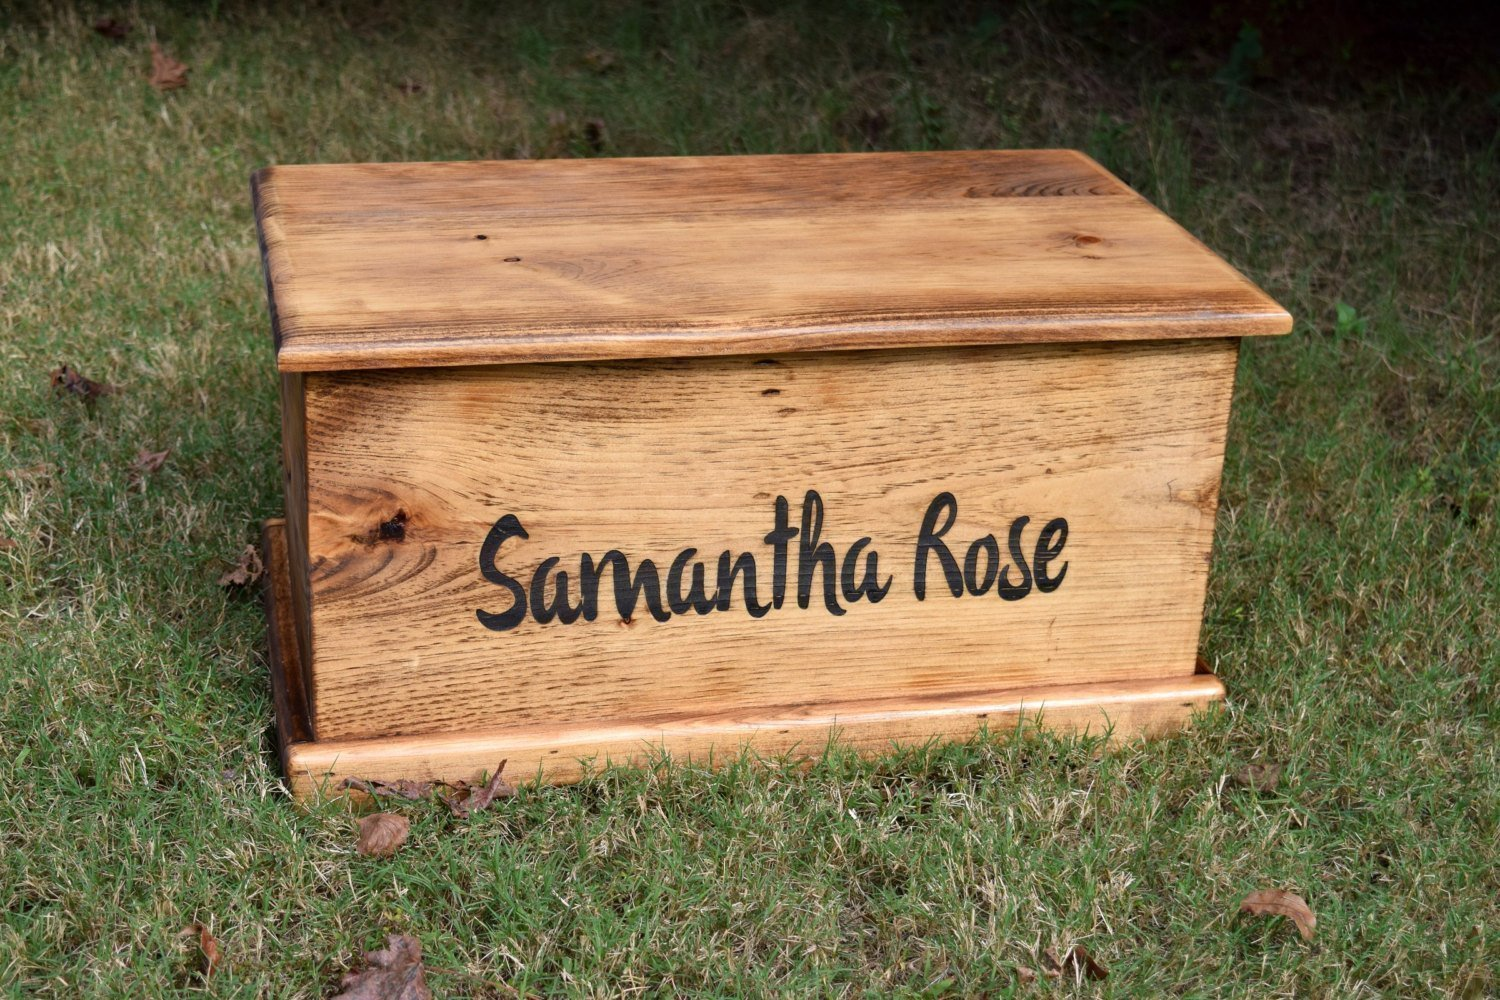 Laser Engraved Personalized Kids Toy Box - Engraved Toy Box - Personalized Toy Box - Children's Toy Box - Kids Memory Box - Gift for Kids - Wood Toy Box - Treasure Chest by Country Barn Babe (Image #3)